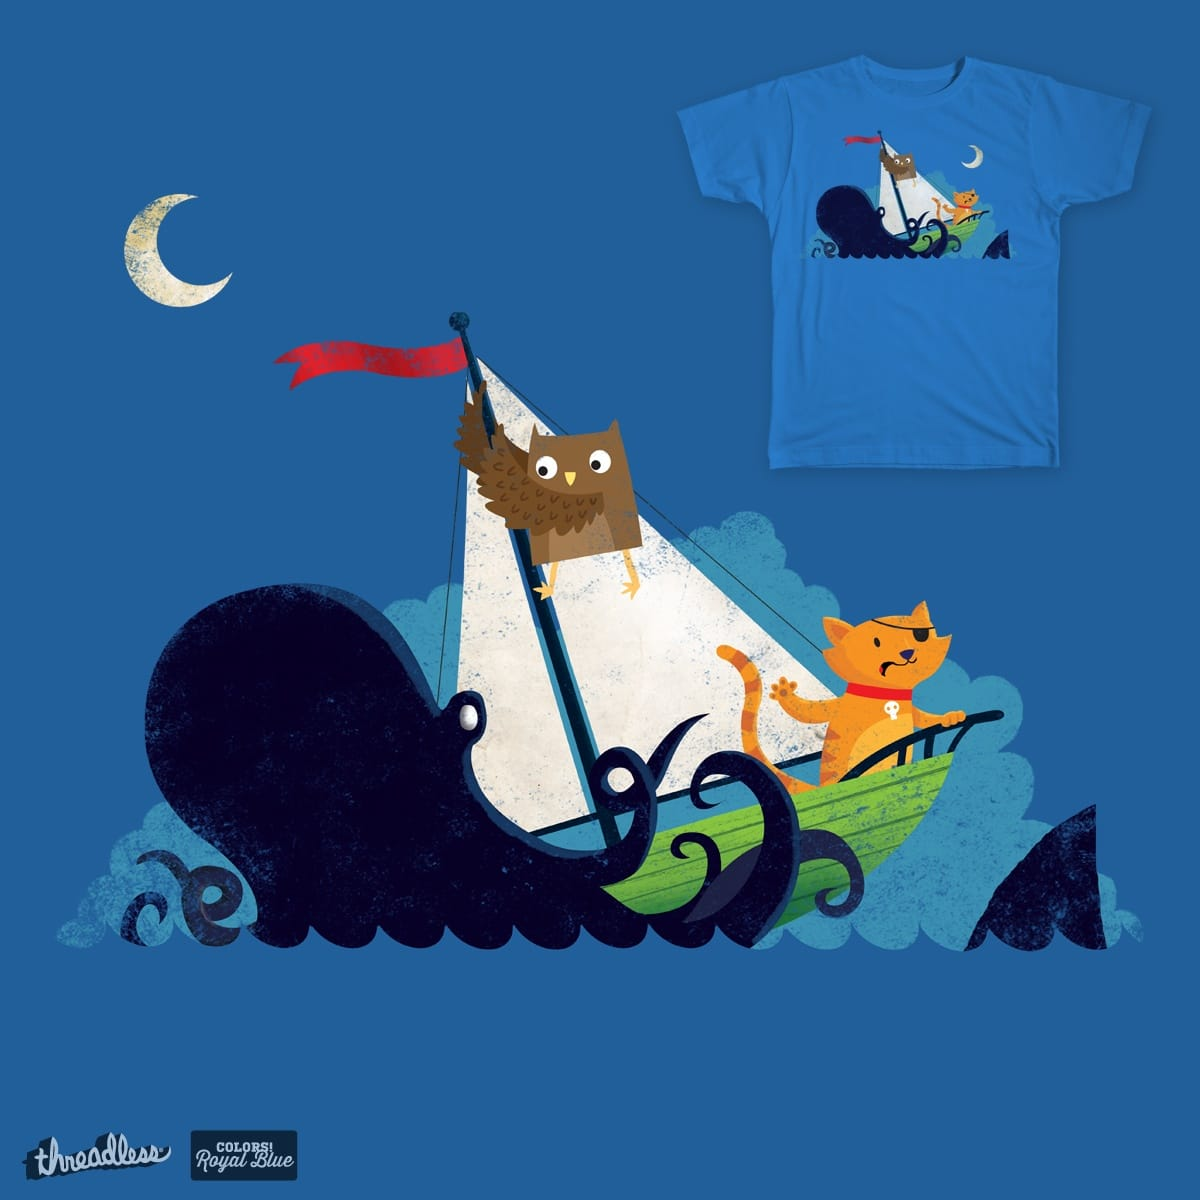 The Owl and the Pussycat were Unprepared by DinoMike on Threadless